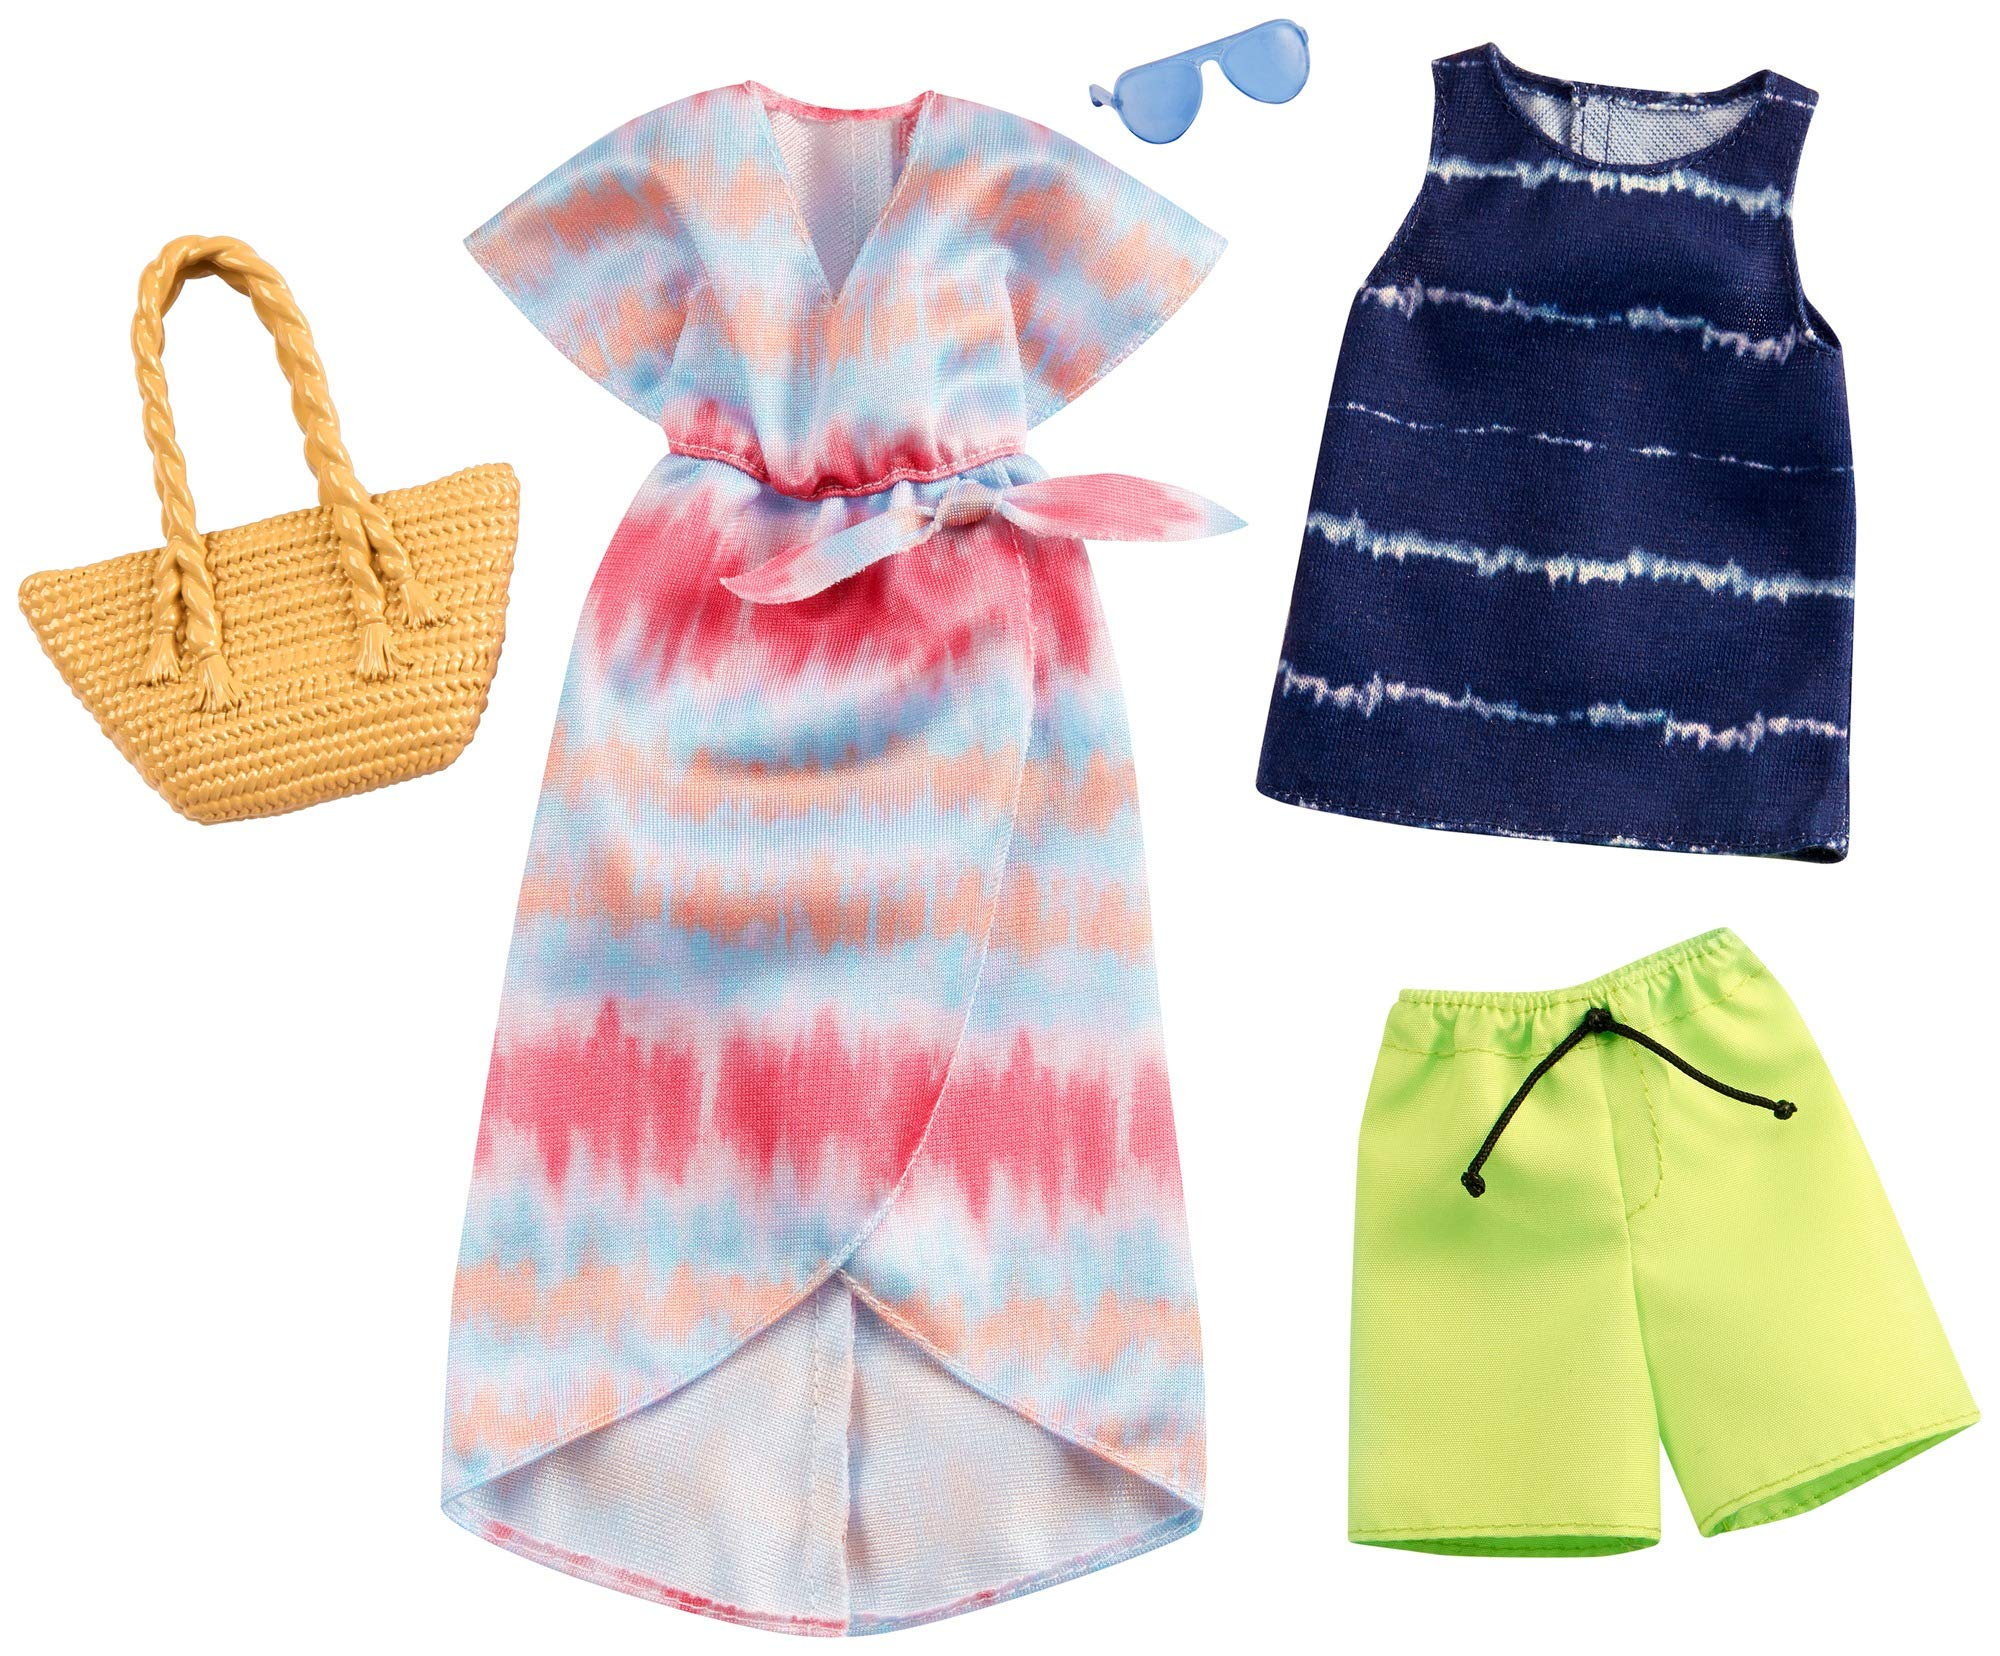 Barbie Fashion Pack with 1 Outfit of Tie-Dye Dress & 1 Accessory Doll & Striped Tie-Dye Tank, Shorts & Accessory for Ken Doll, Gift for 3 to 8 Year Olds